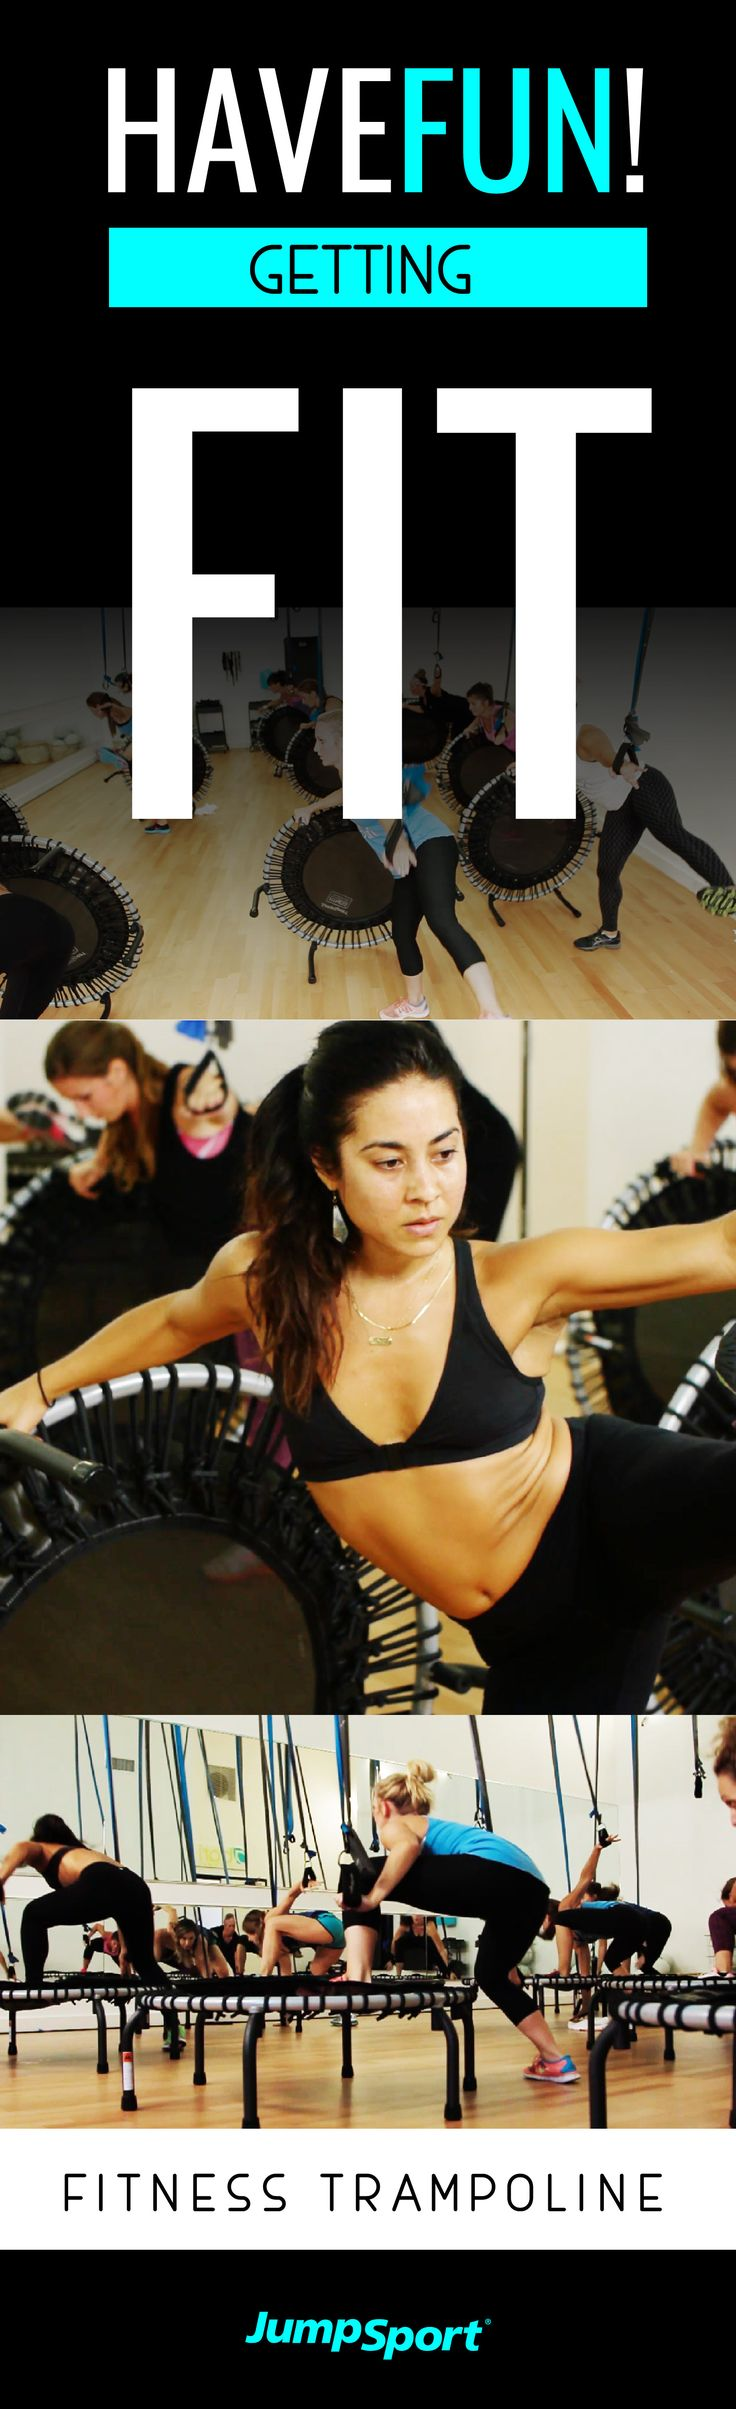 Visit http://www.jumpsport.com/Fitness-Trampoline-Model-350 to see how you can have fun getting fit the safe way! JumpSport Fitness Trampolines are the leading brand for safety, quality, and fail safe guarantee. This low impact workout is perfect for anyone who wants a good burn. Who thought working out could be such a blast and good for you?!